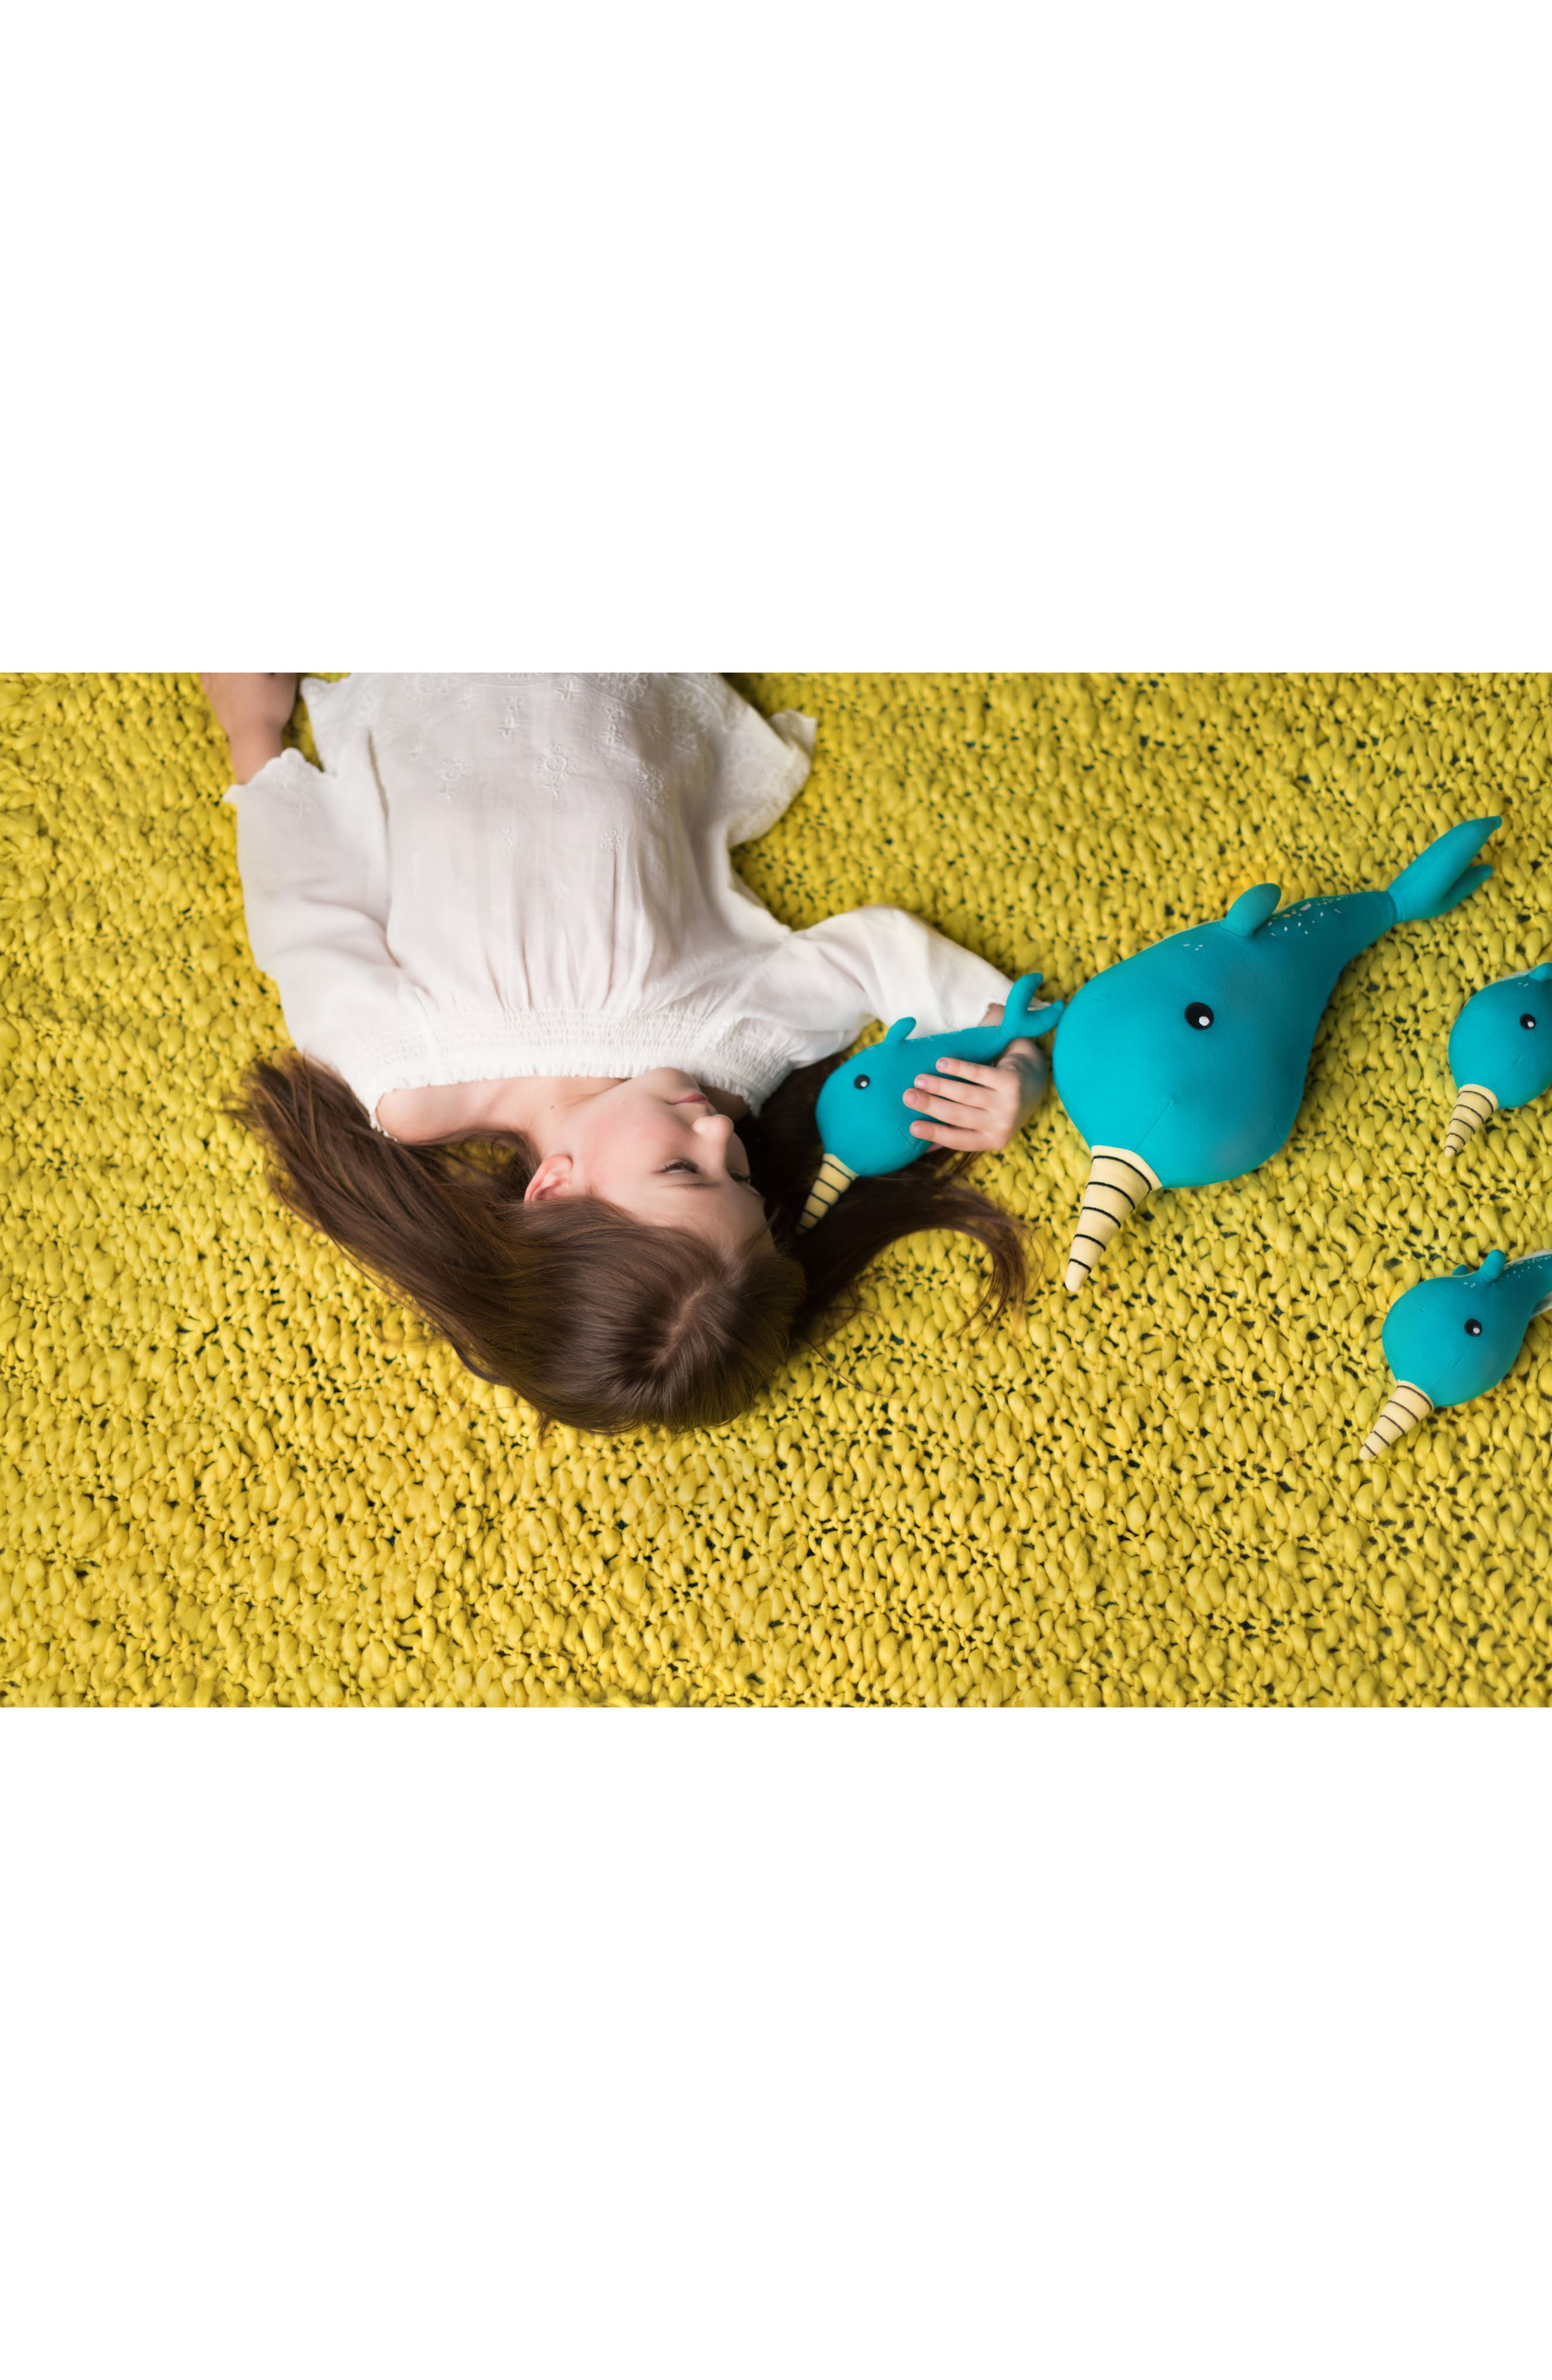 Norman Narwhal Stuffed Animal,                             Alternate thumbnail 2, color,                             Blue